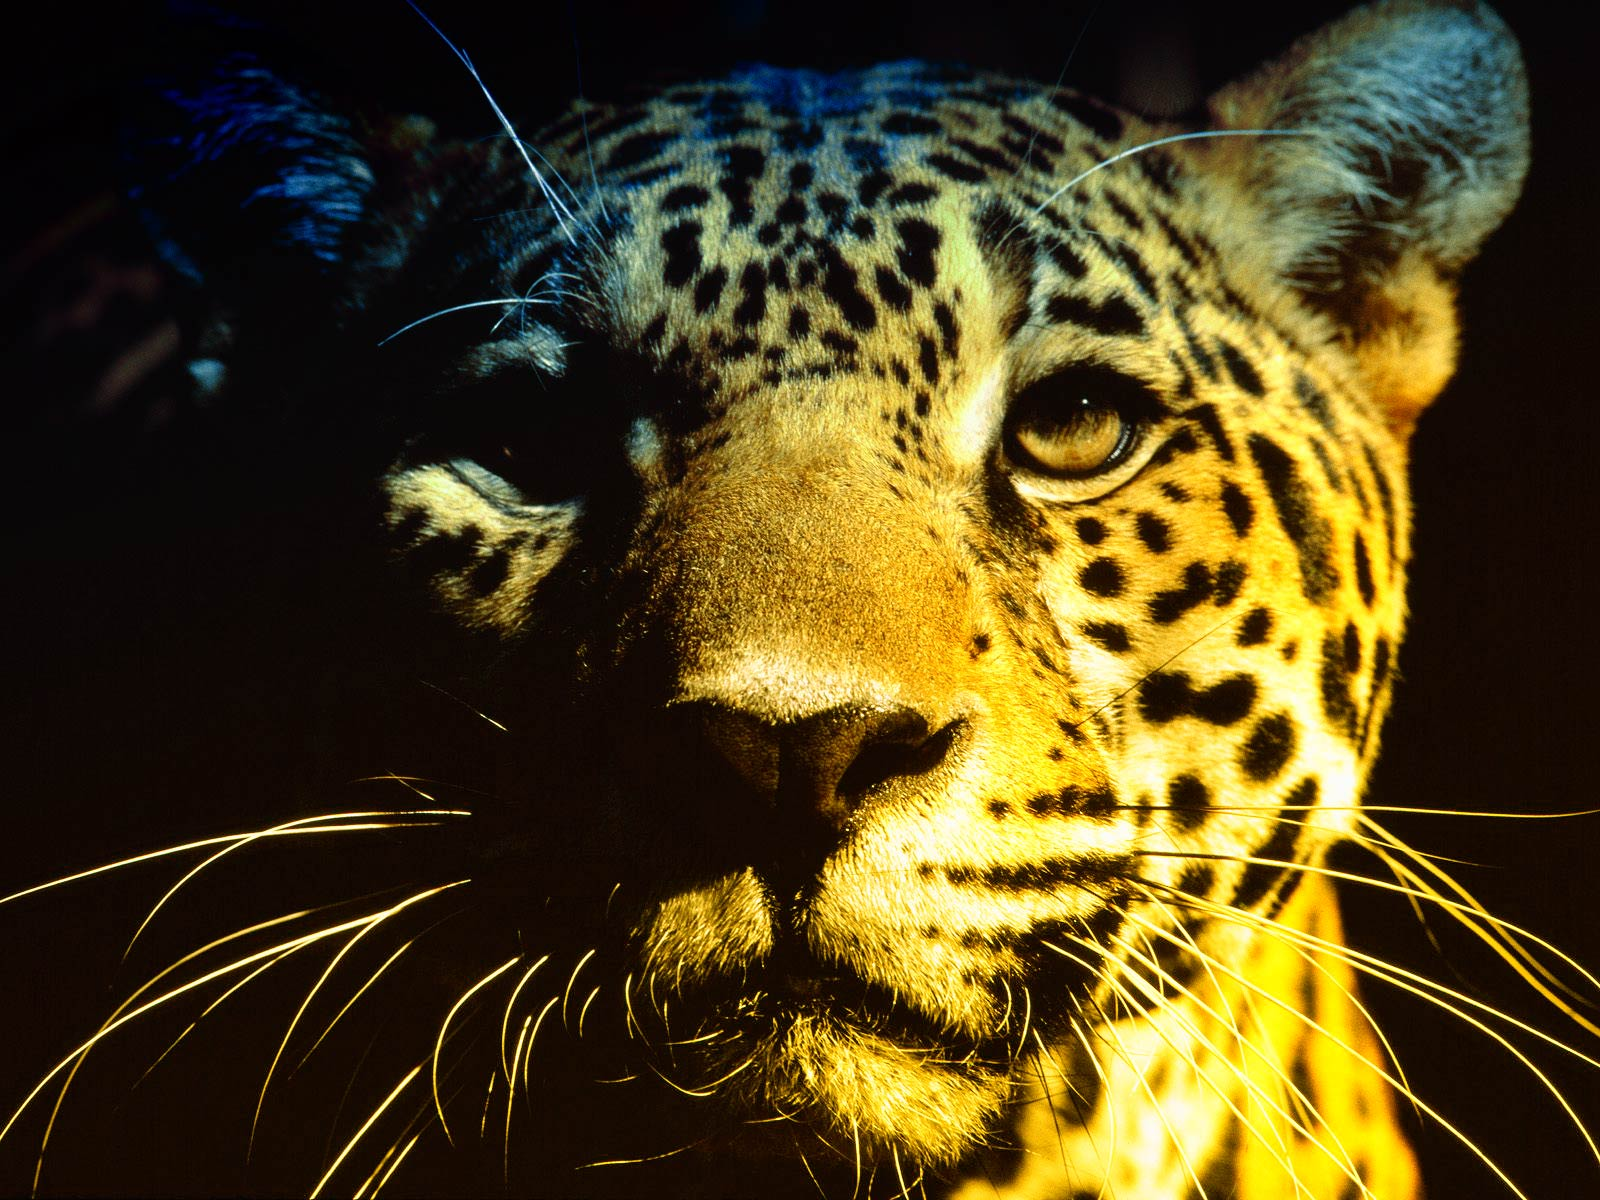 Wallpaper of jaguar awesome wallpapers - Jaguar animal hd wallpapers ...